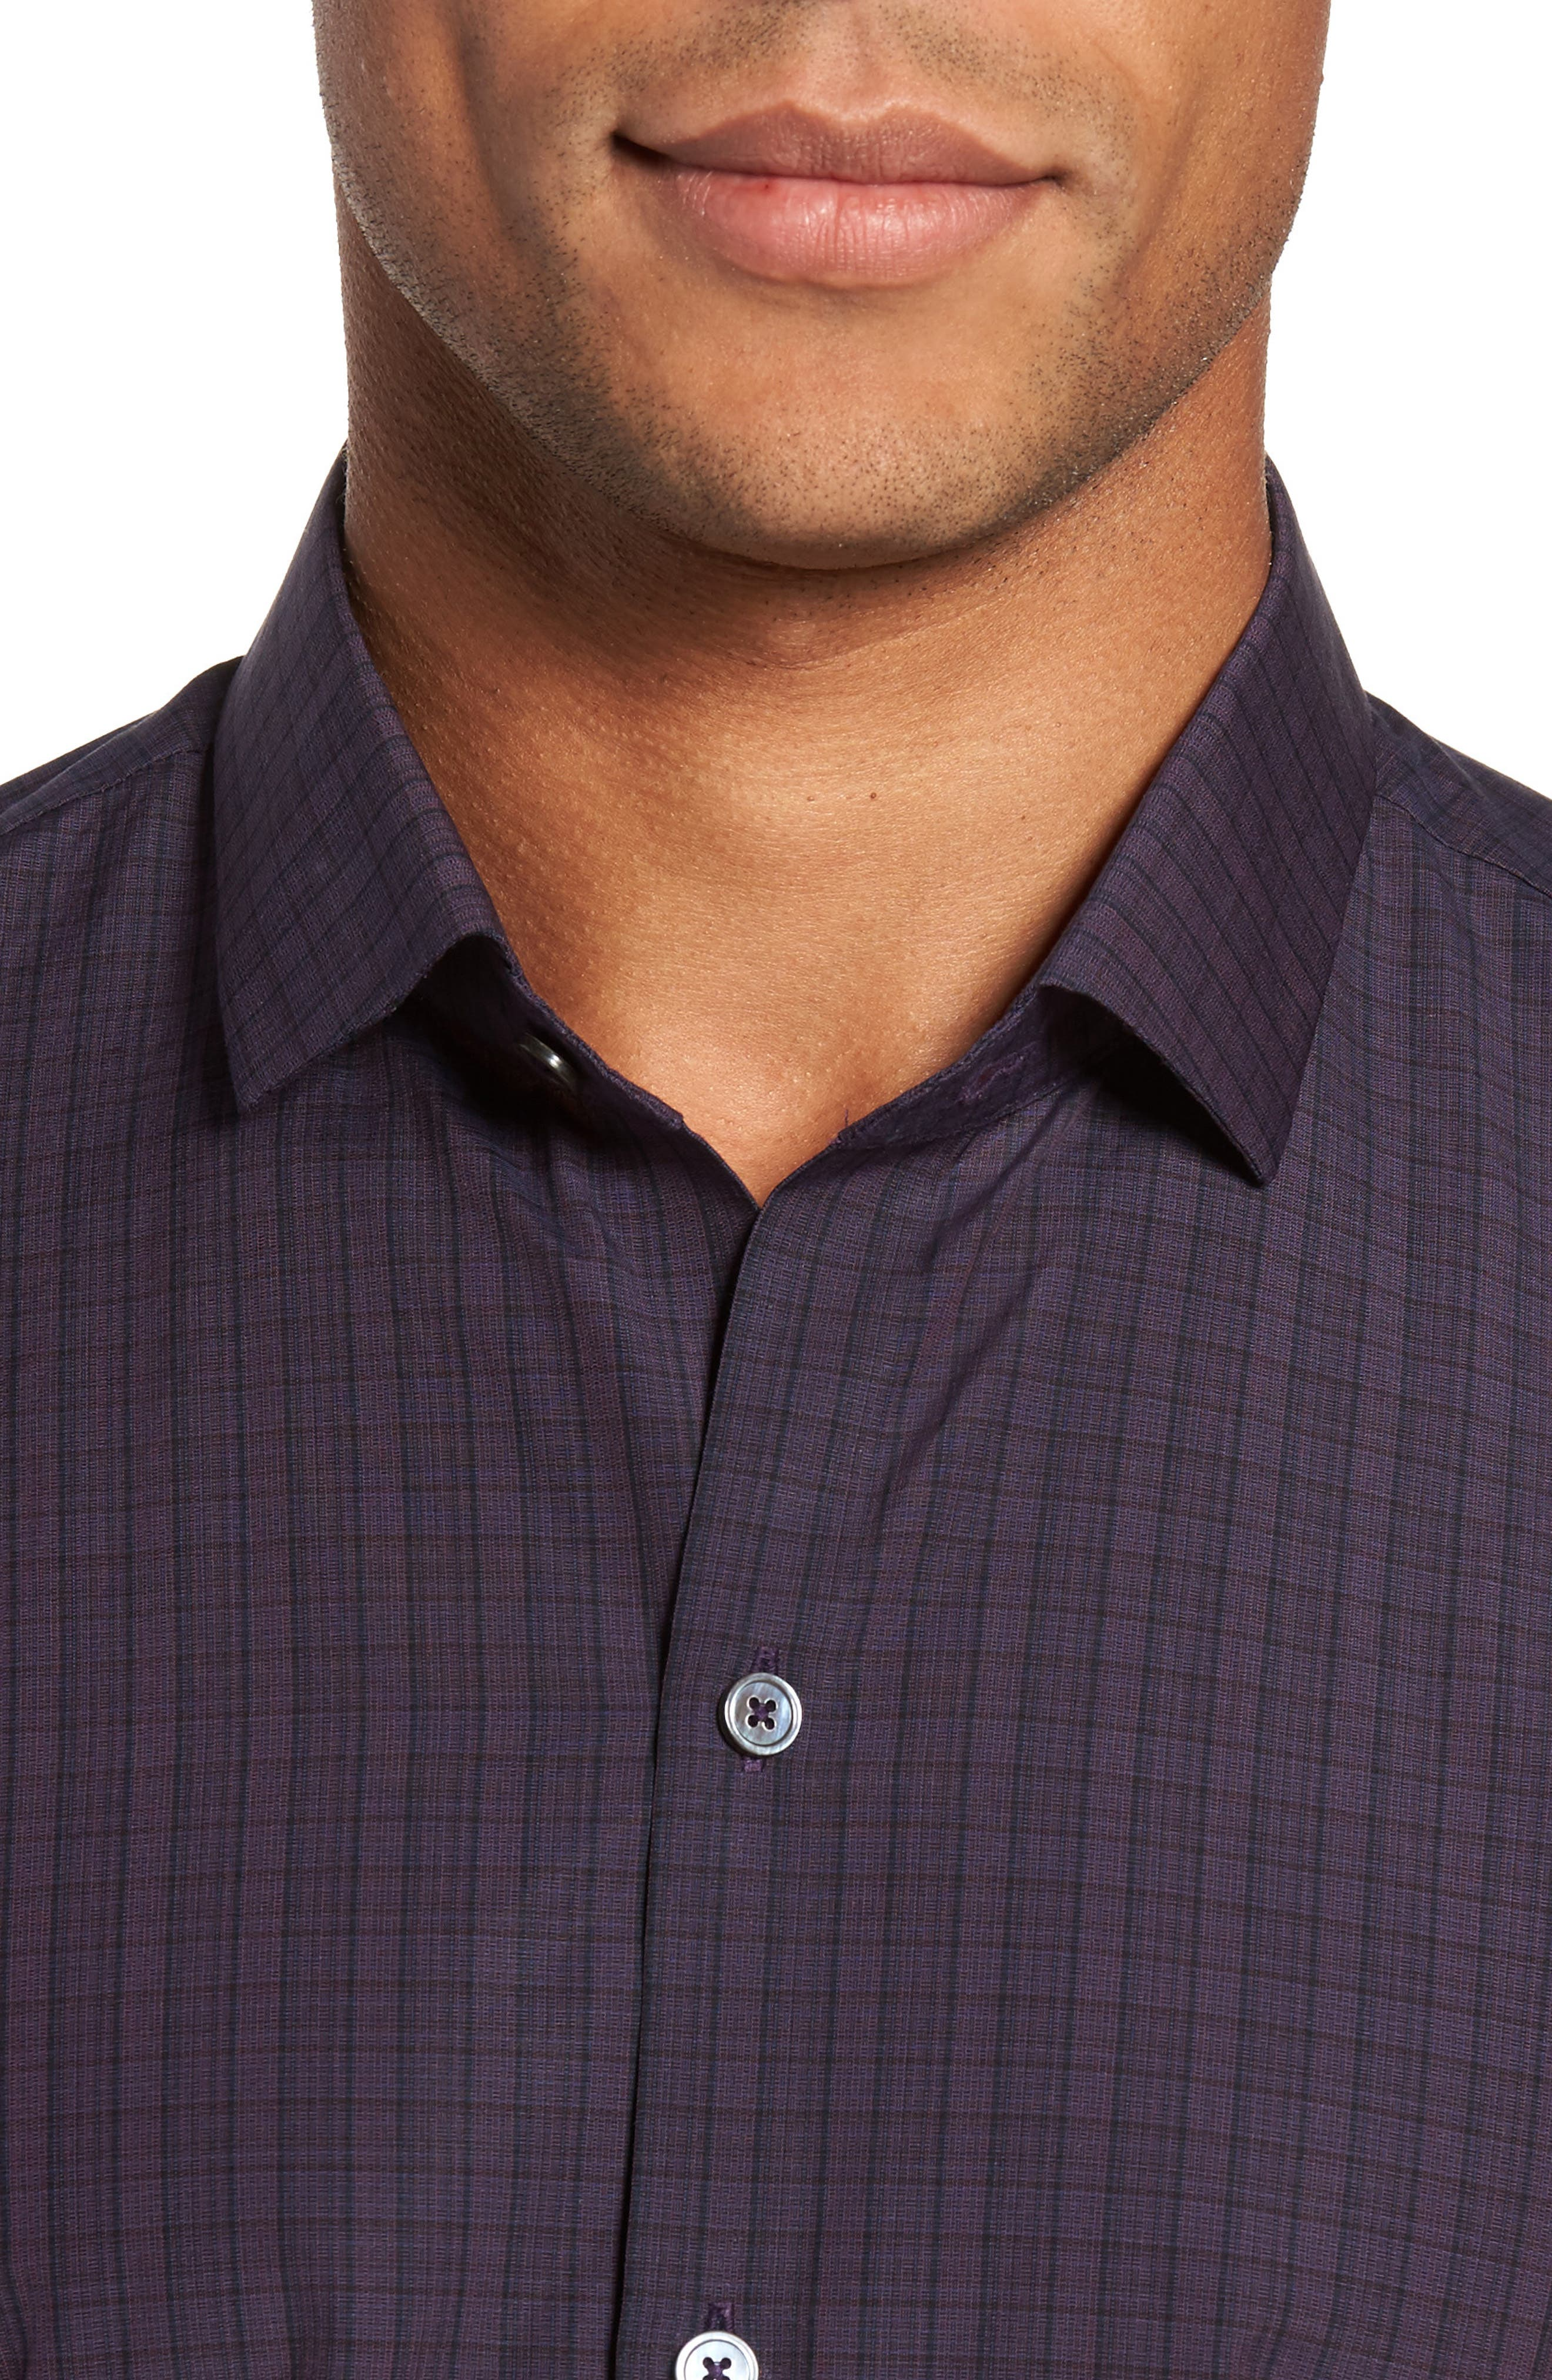 Wein Slim Fit Check Sport Shirt,                             Alternate thumbnail 4, color,                             Wine